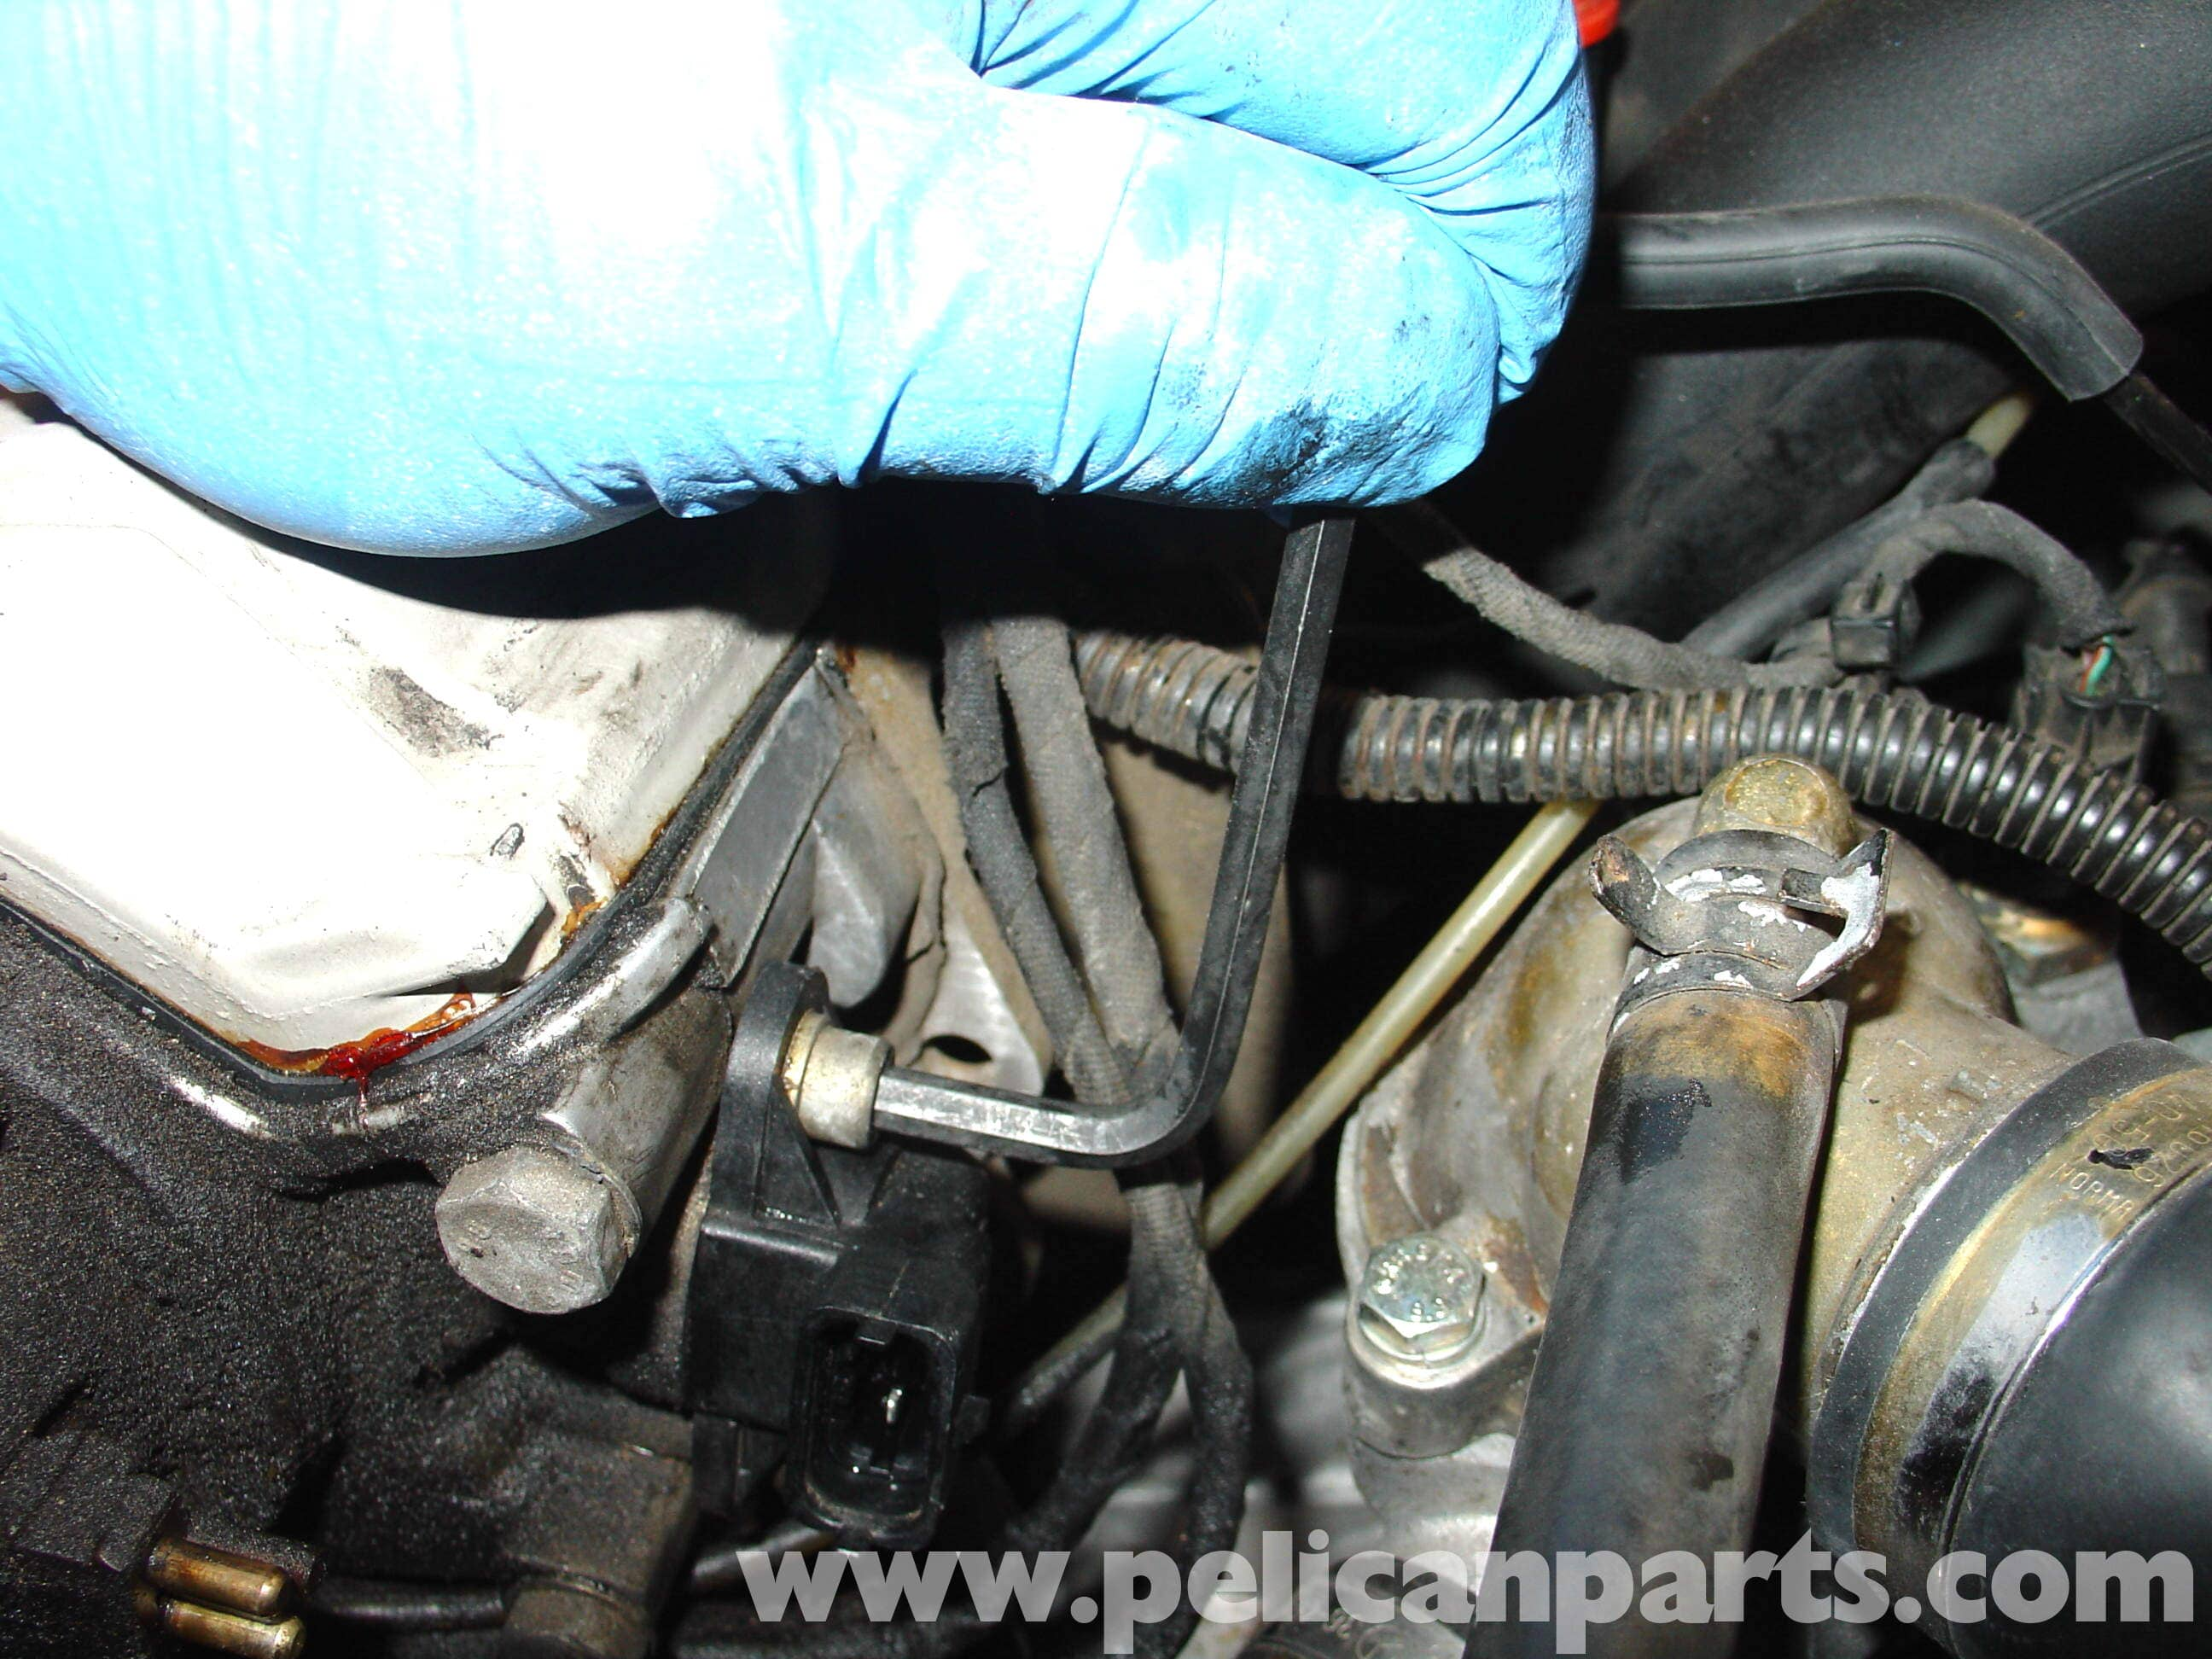 Mercedes-Benz W210 Camshaft Position Sensor Replacement